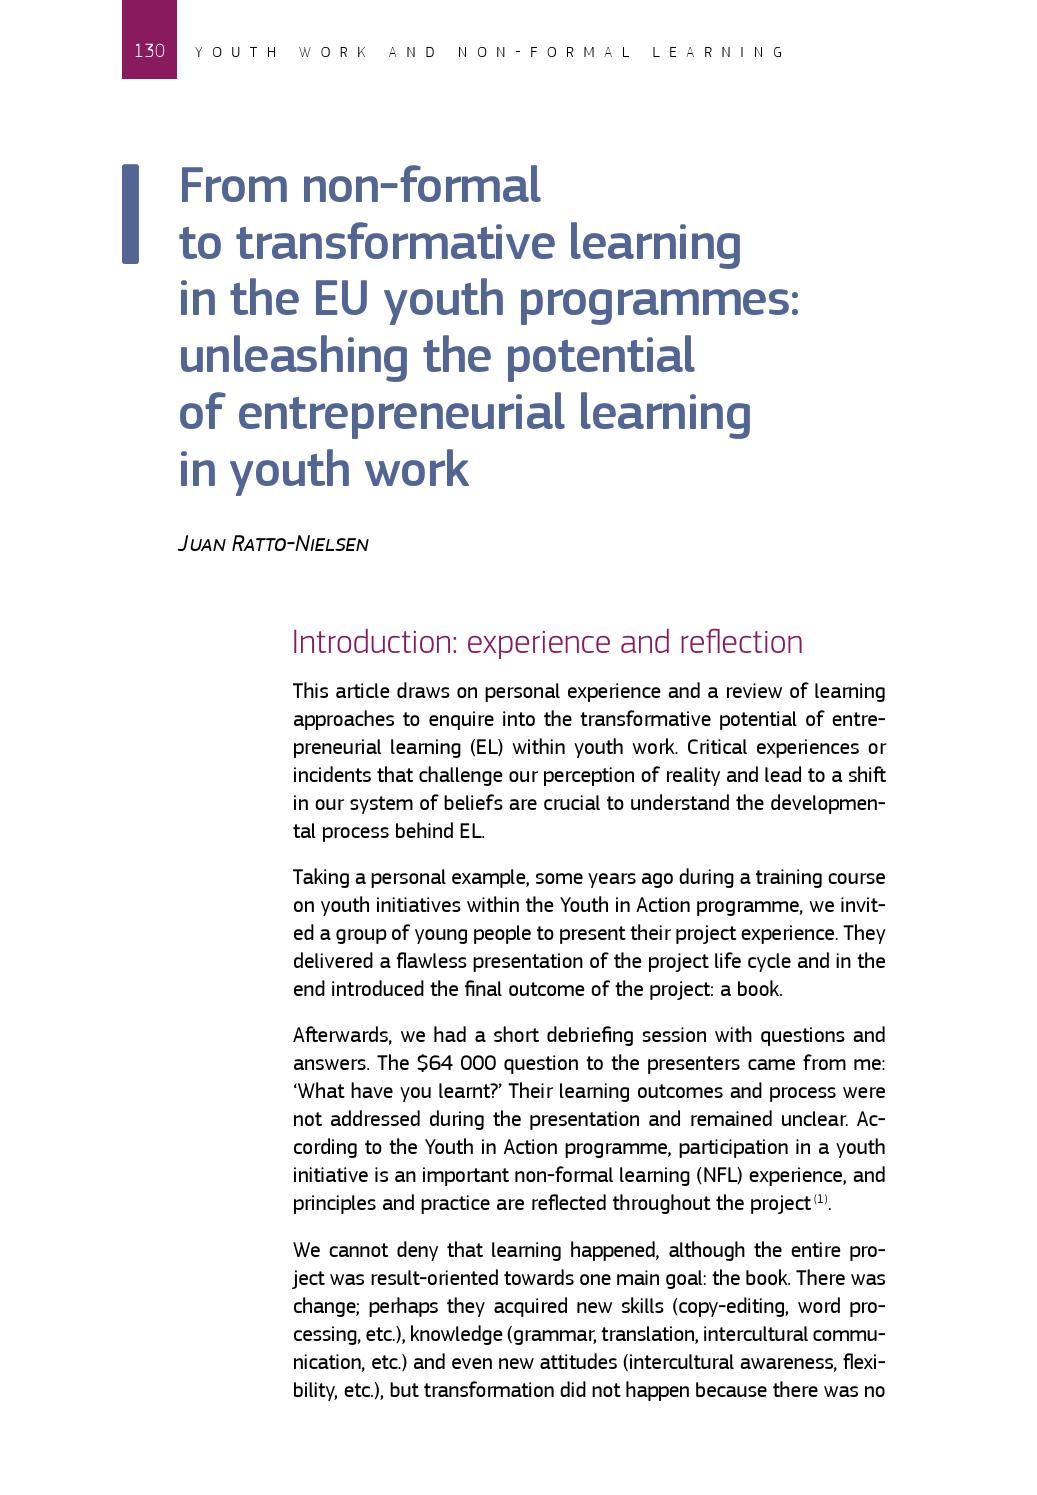 From non formal to transformative learning in the eu youth from non formal to transformative learning in the eu youth programmes by juan ratto nielsen issuu 1betcityfo Gallery